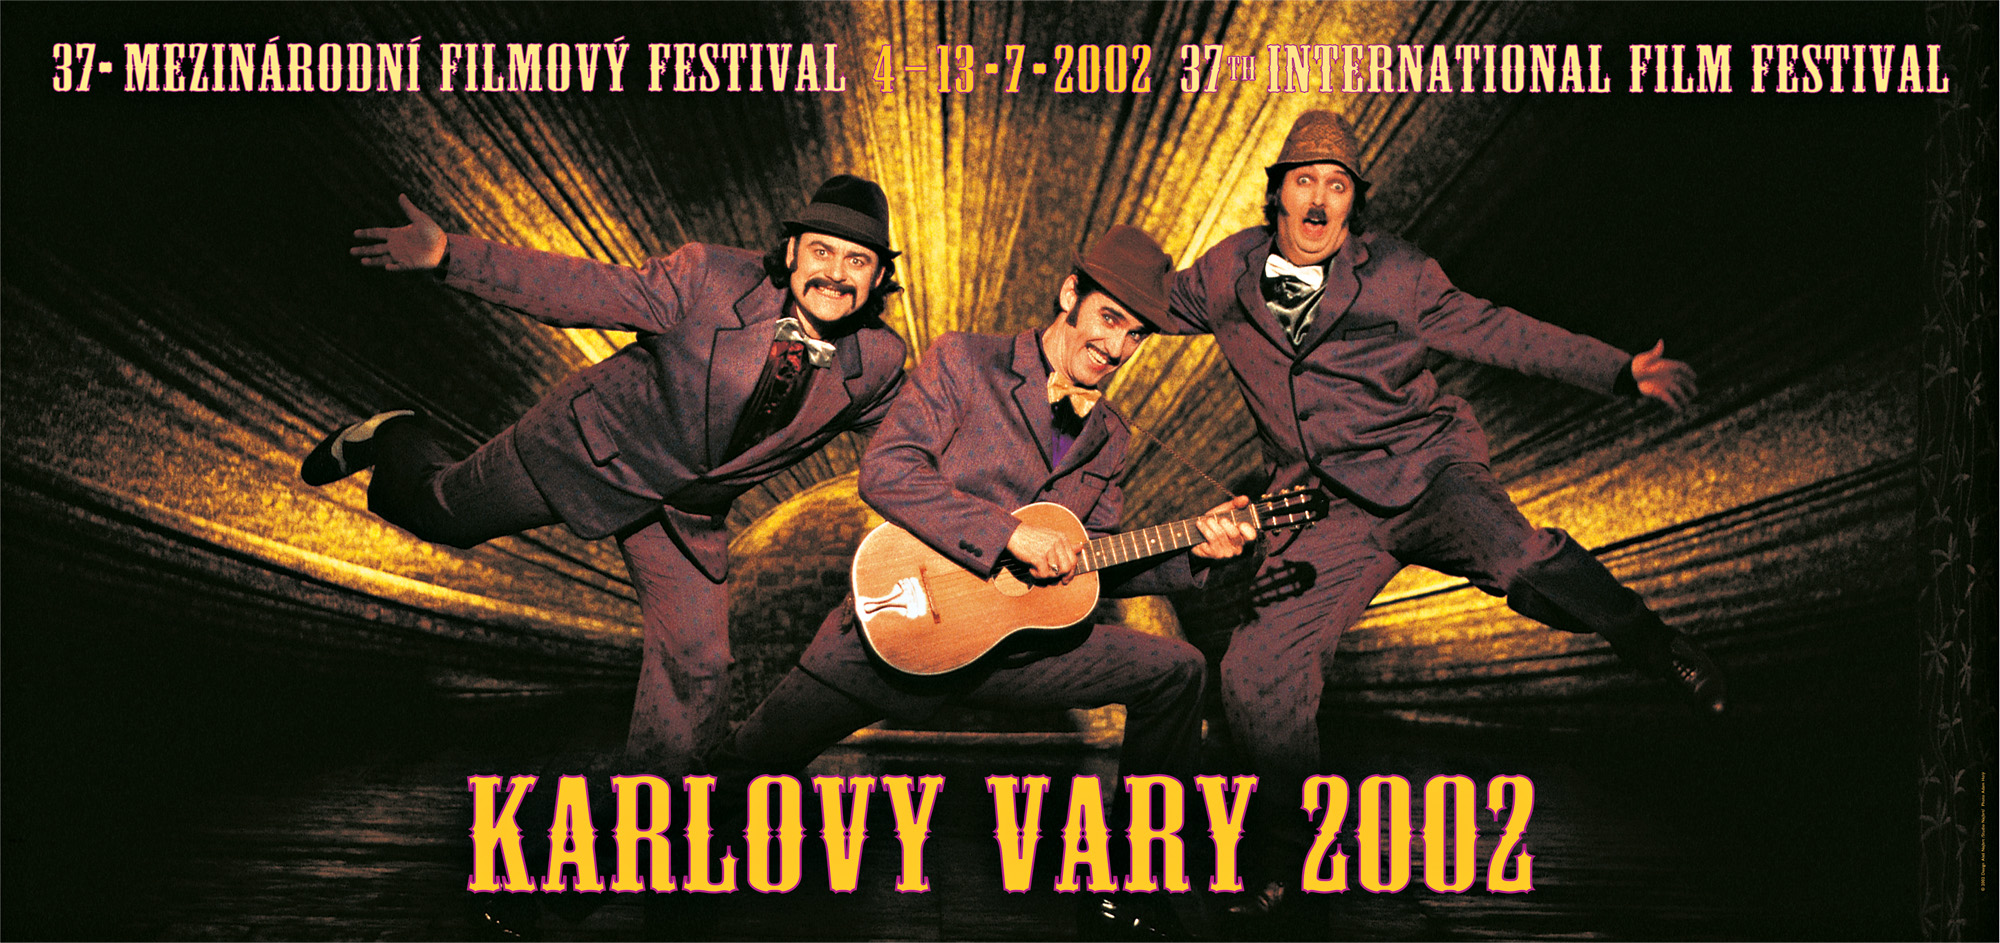 37th Karlovy Vary International Film Festival